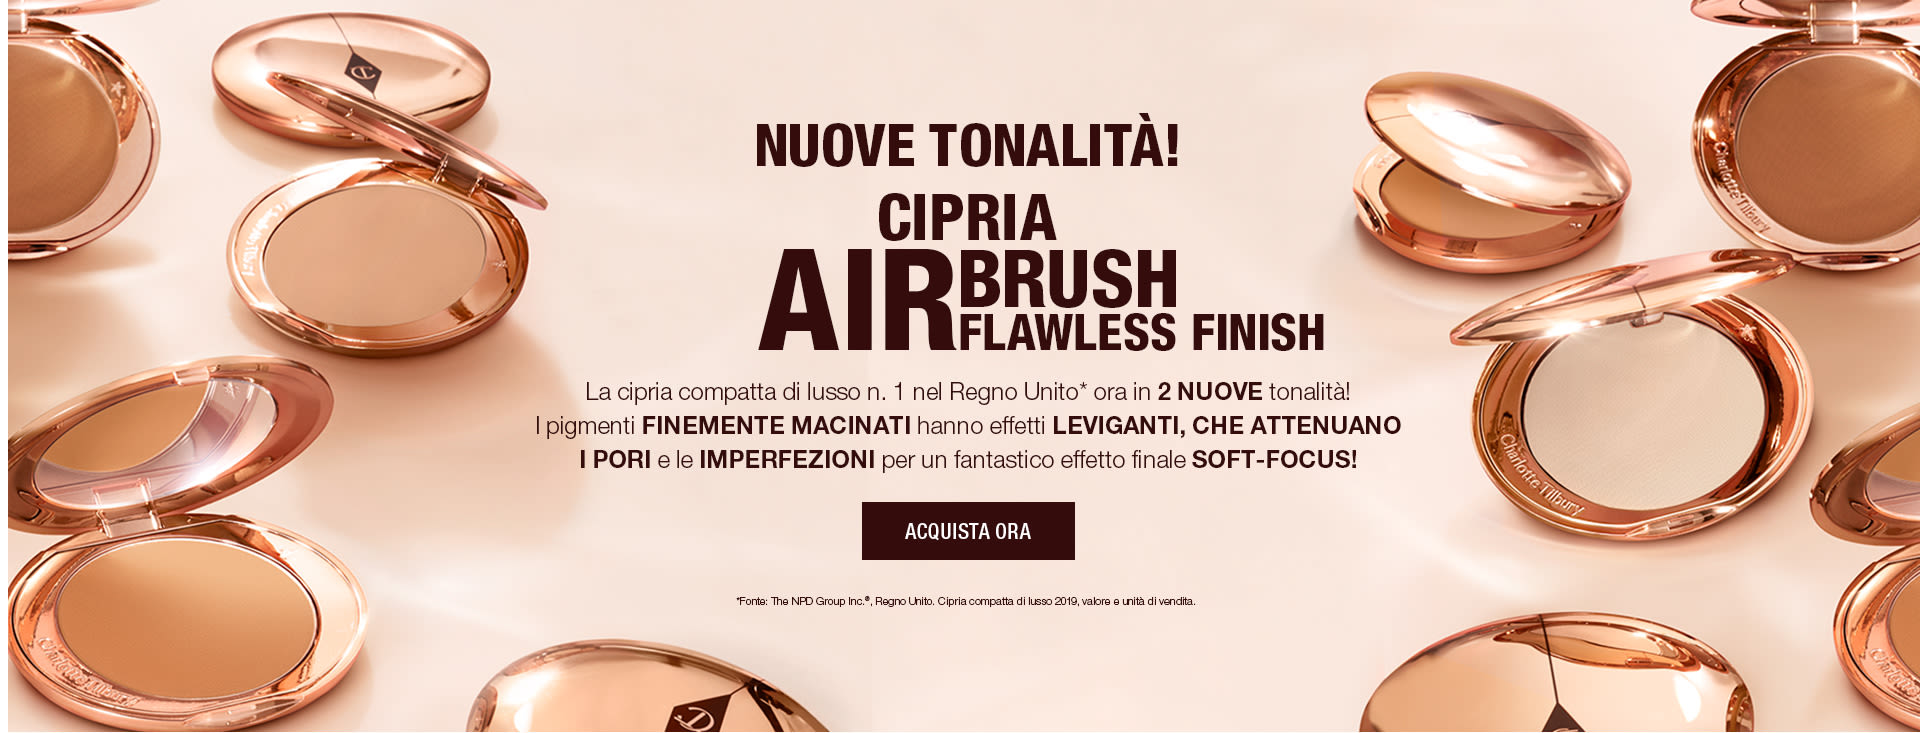 Airbrush Flawless Finish shade extension hero IT